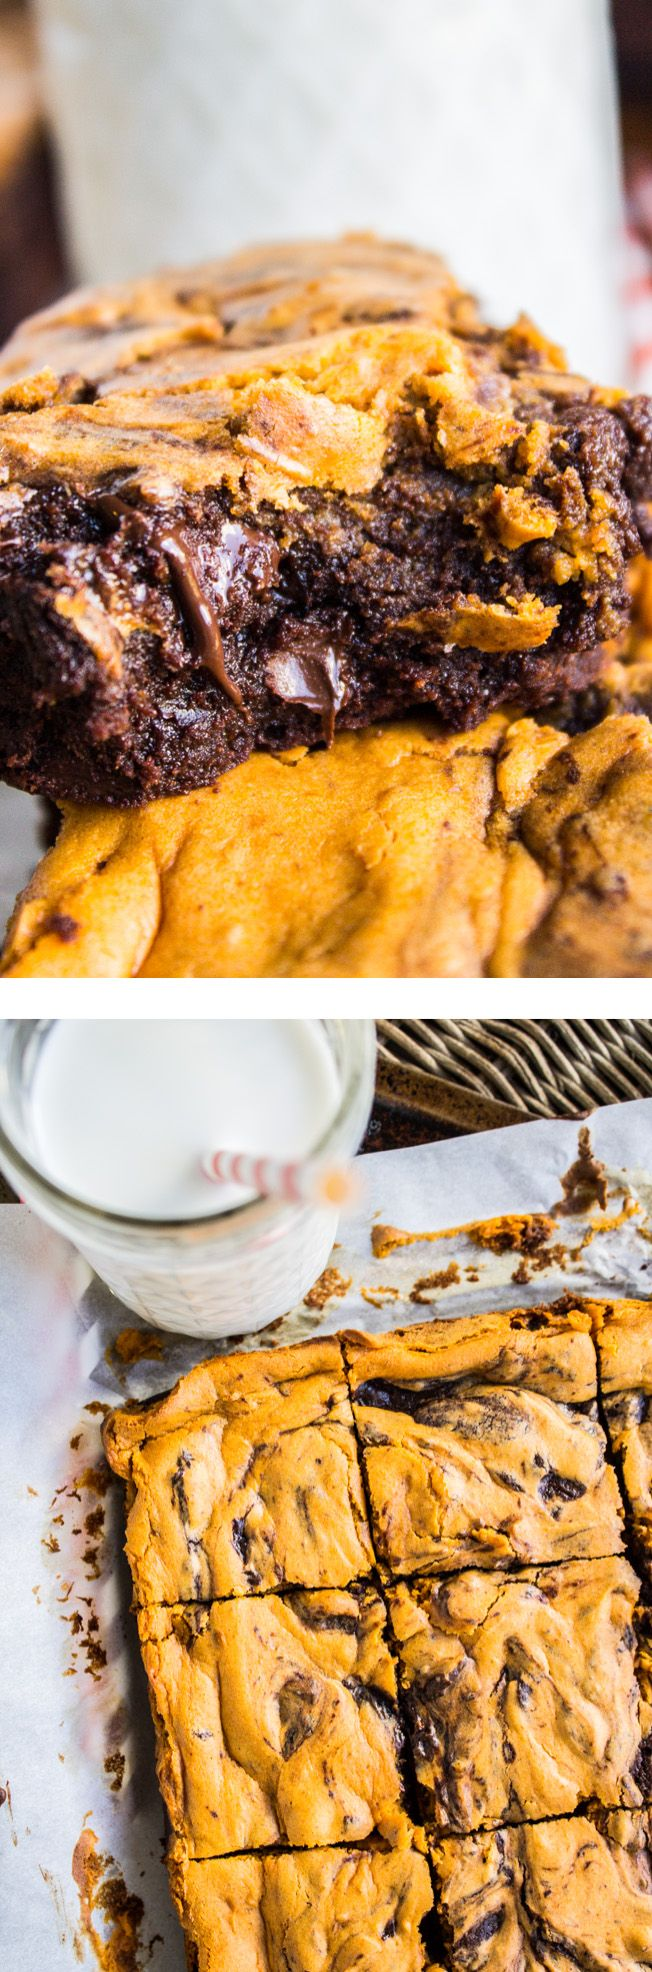 Pumpkin Cream Cheese Swirl Brownies from The Food Charlatan // These are so decadent! Perfect treat for Halloween.